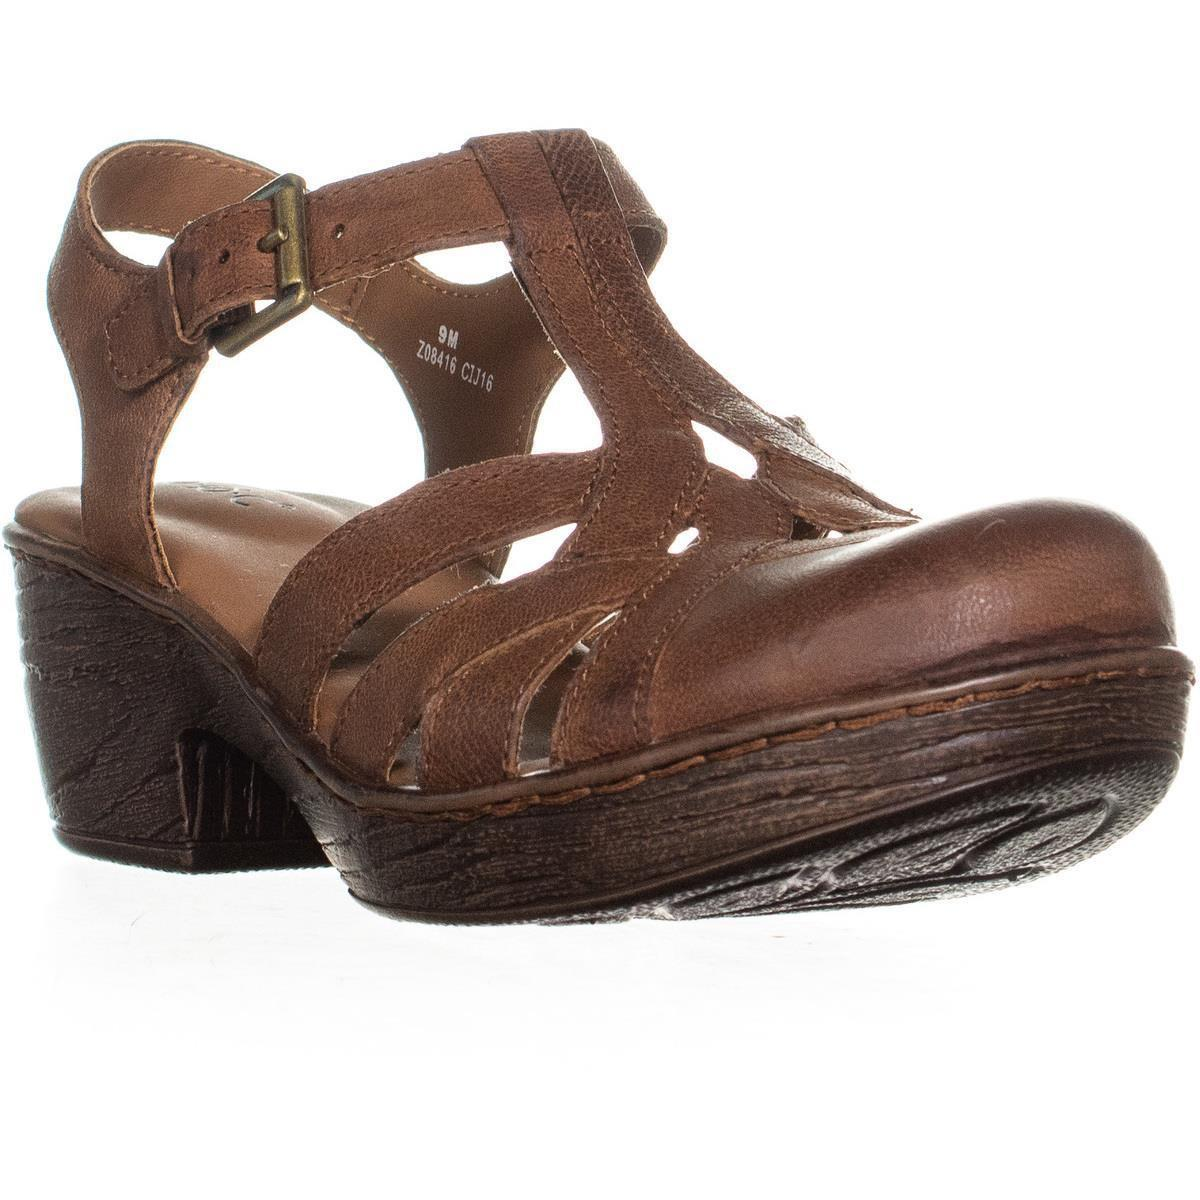 fed304e5ee57 Lyst - Born B.o.c. Persi Closed Toe Slingback Sandals in Brown